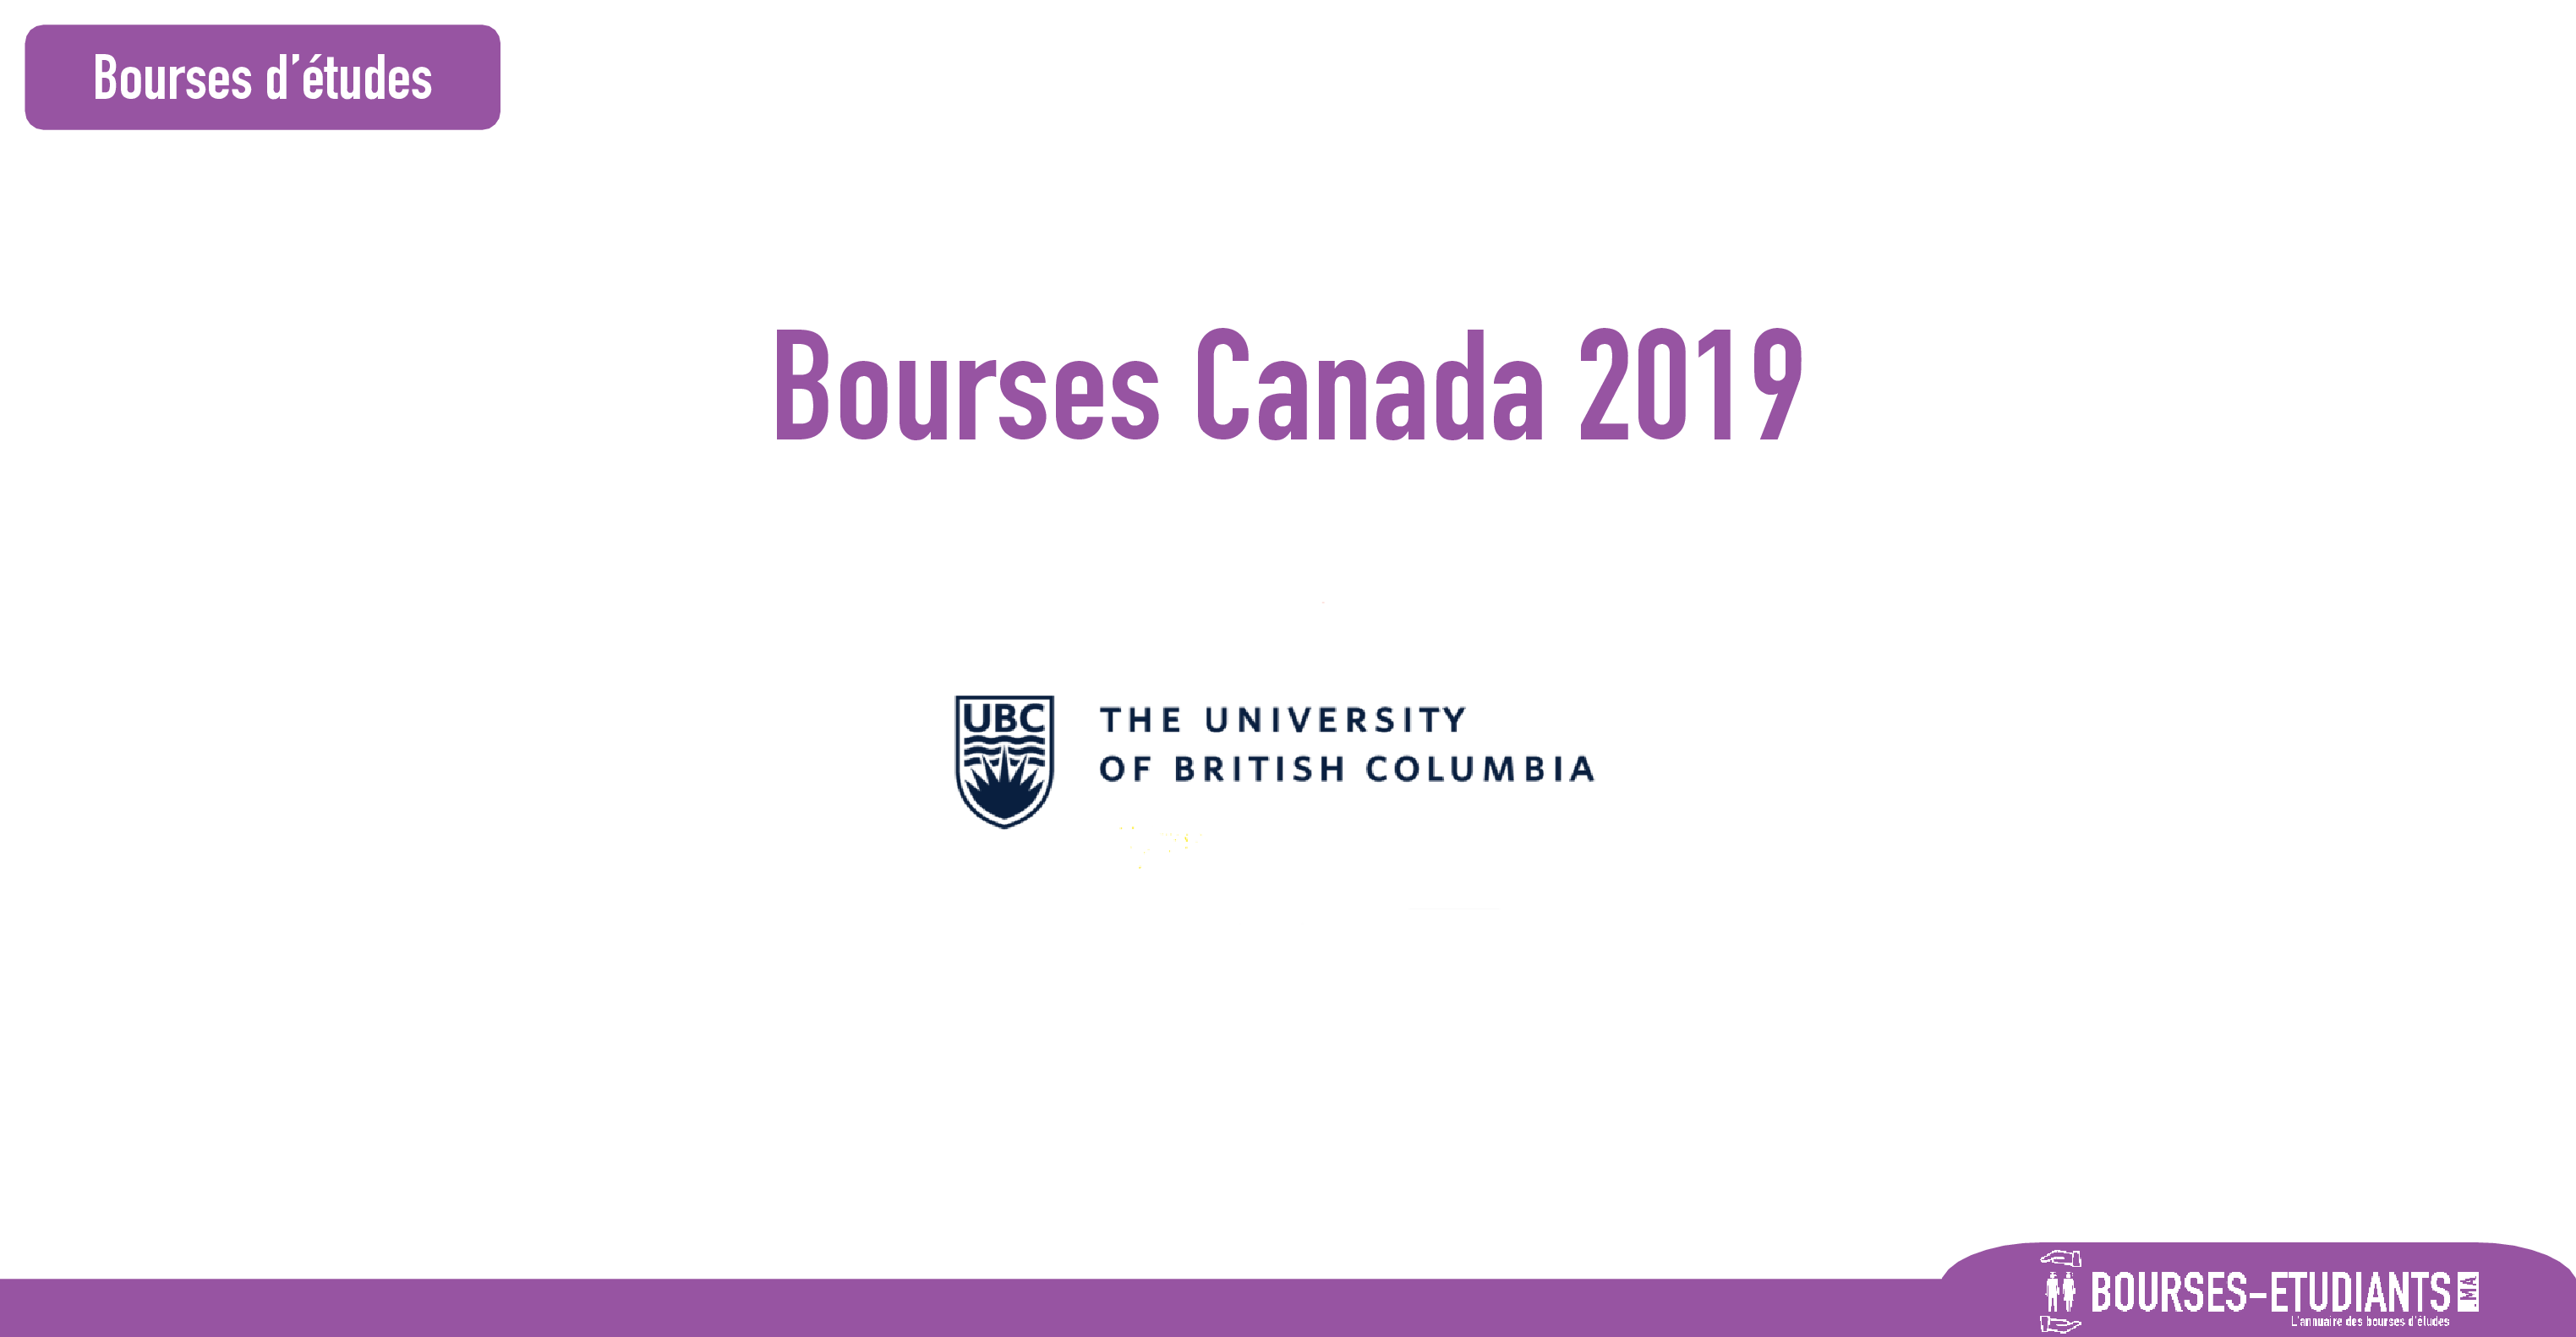 bourse University of British Columbia